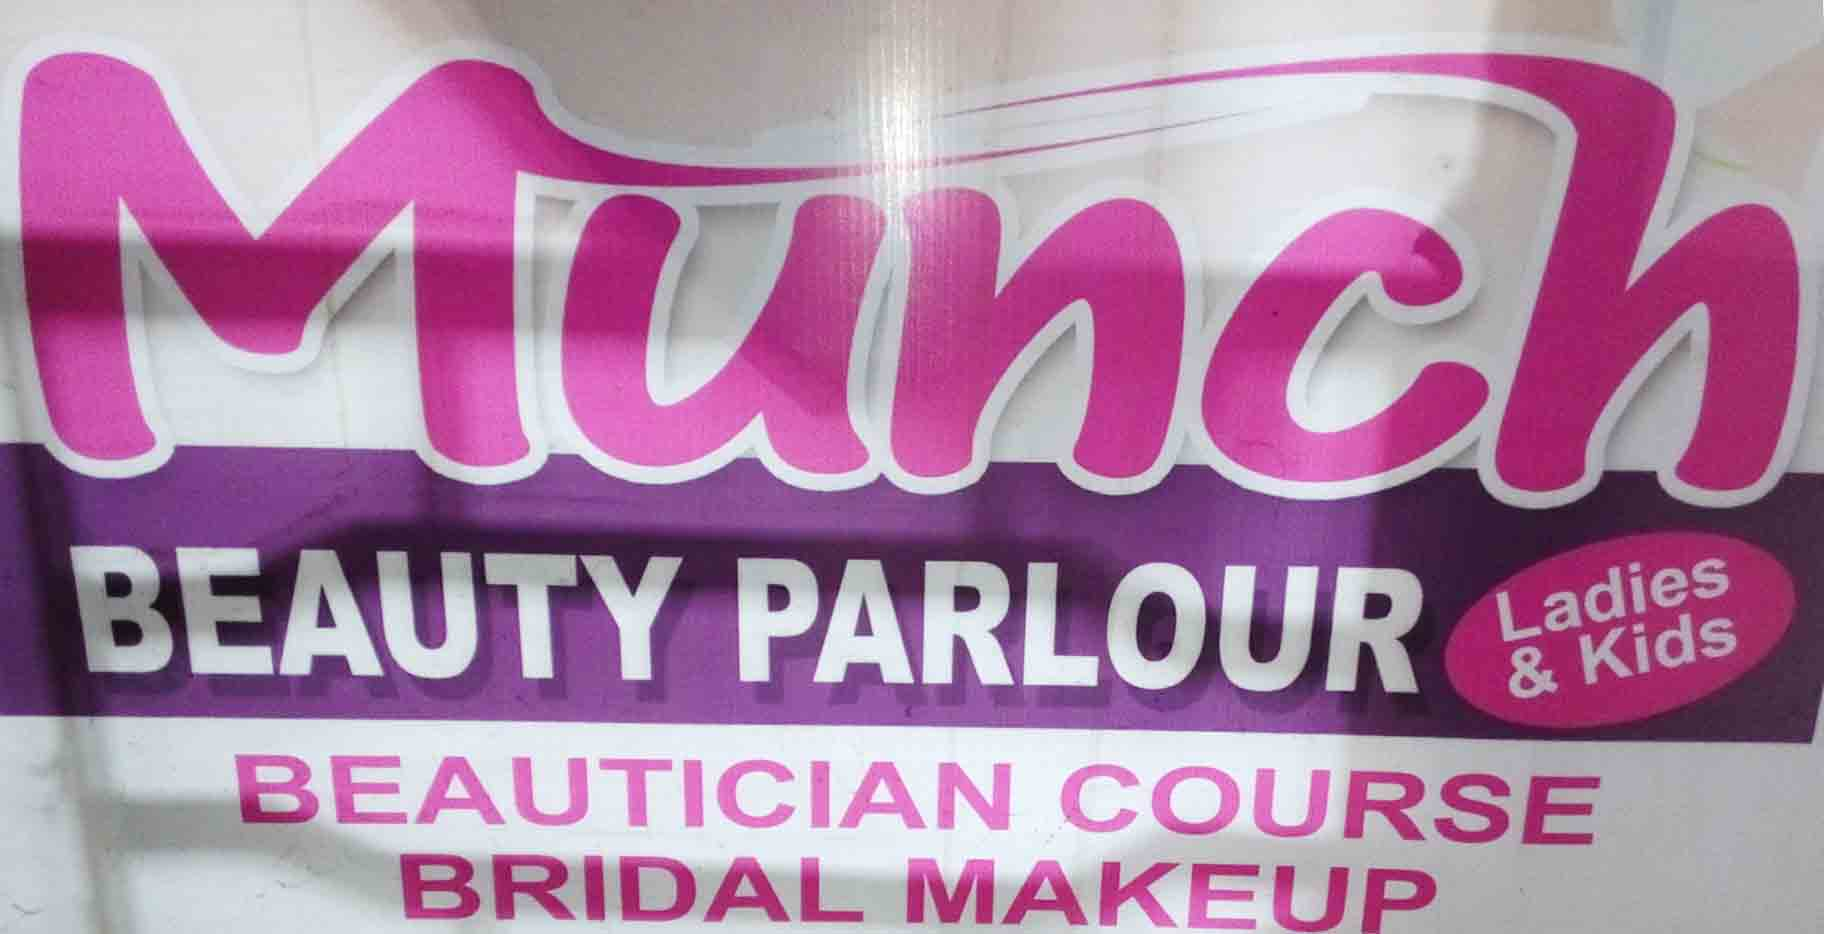 munch beauty parlour